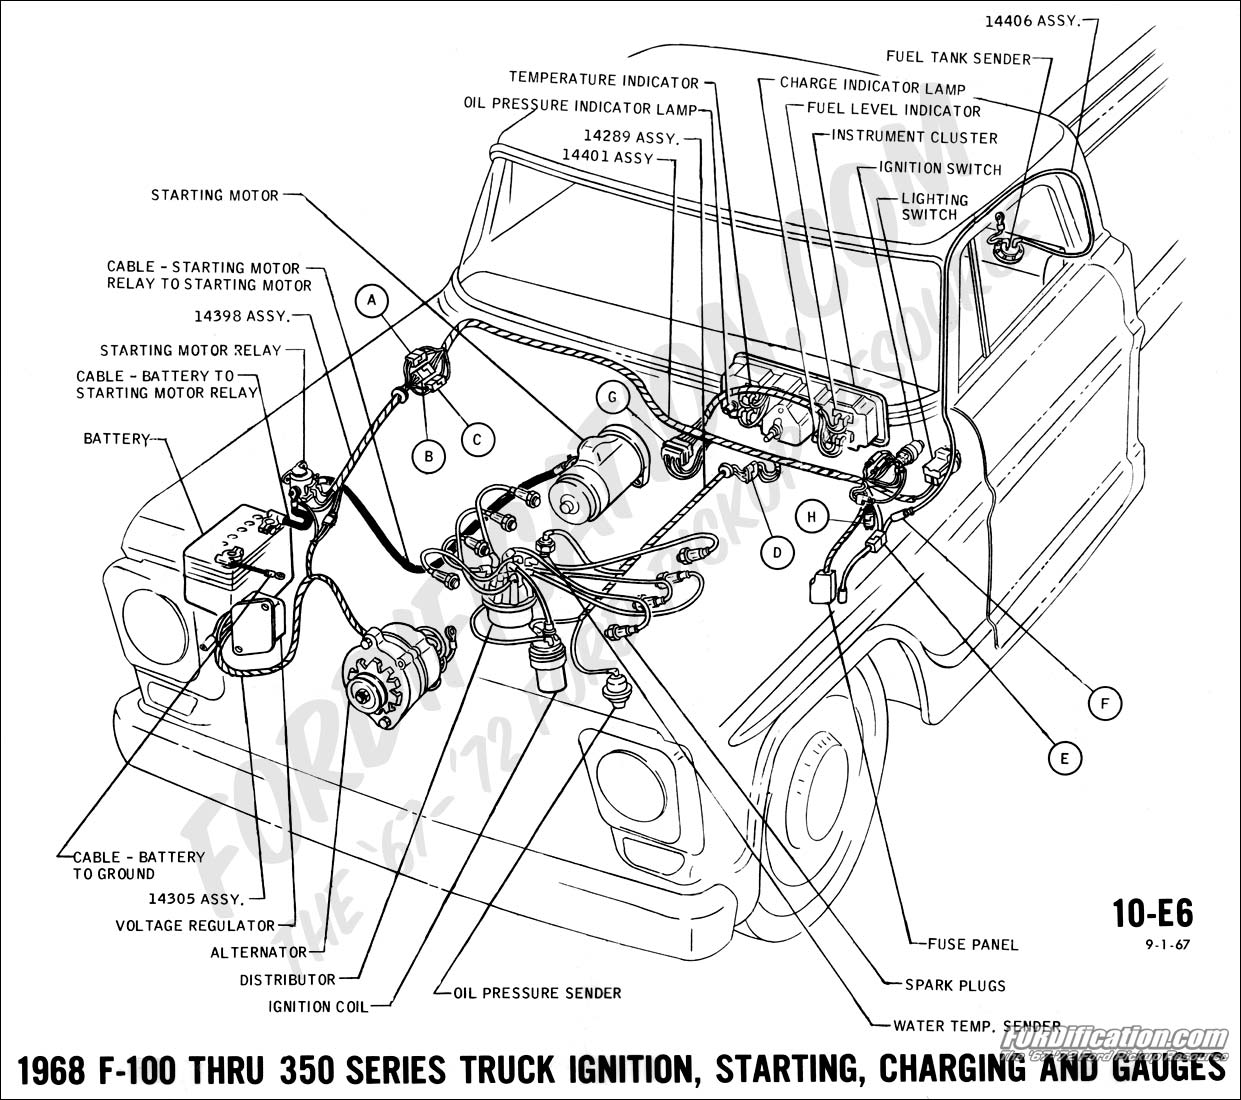 Ford Truck Technical Drawings And Schematics Section H Wiring 1999 E350 Heater Switch Diagram 1968 F 100 Thru 350 Ignition Starting Charging Gauges